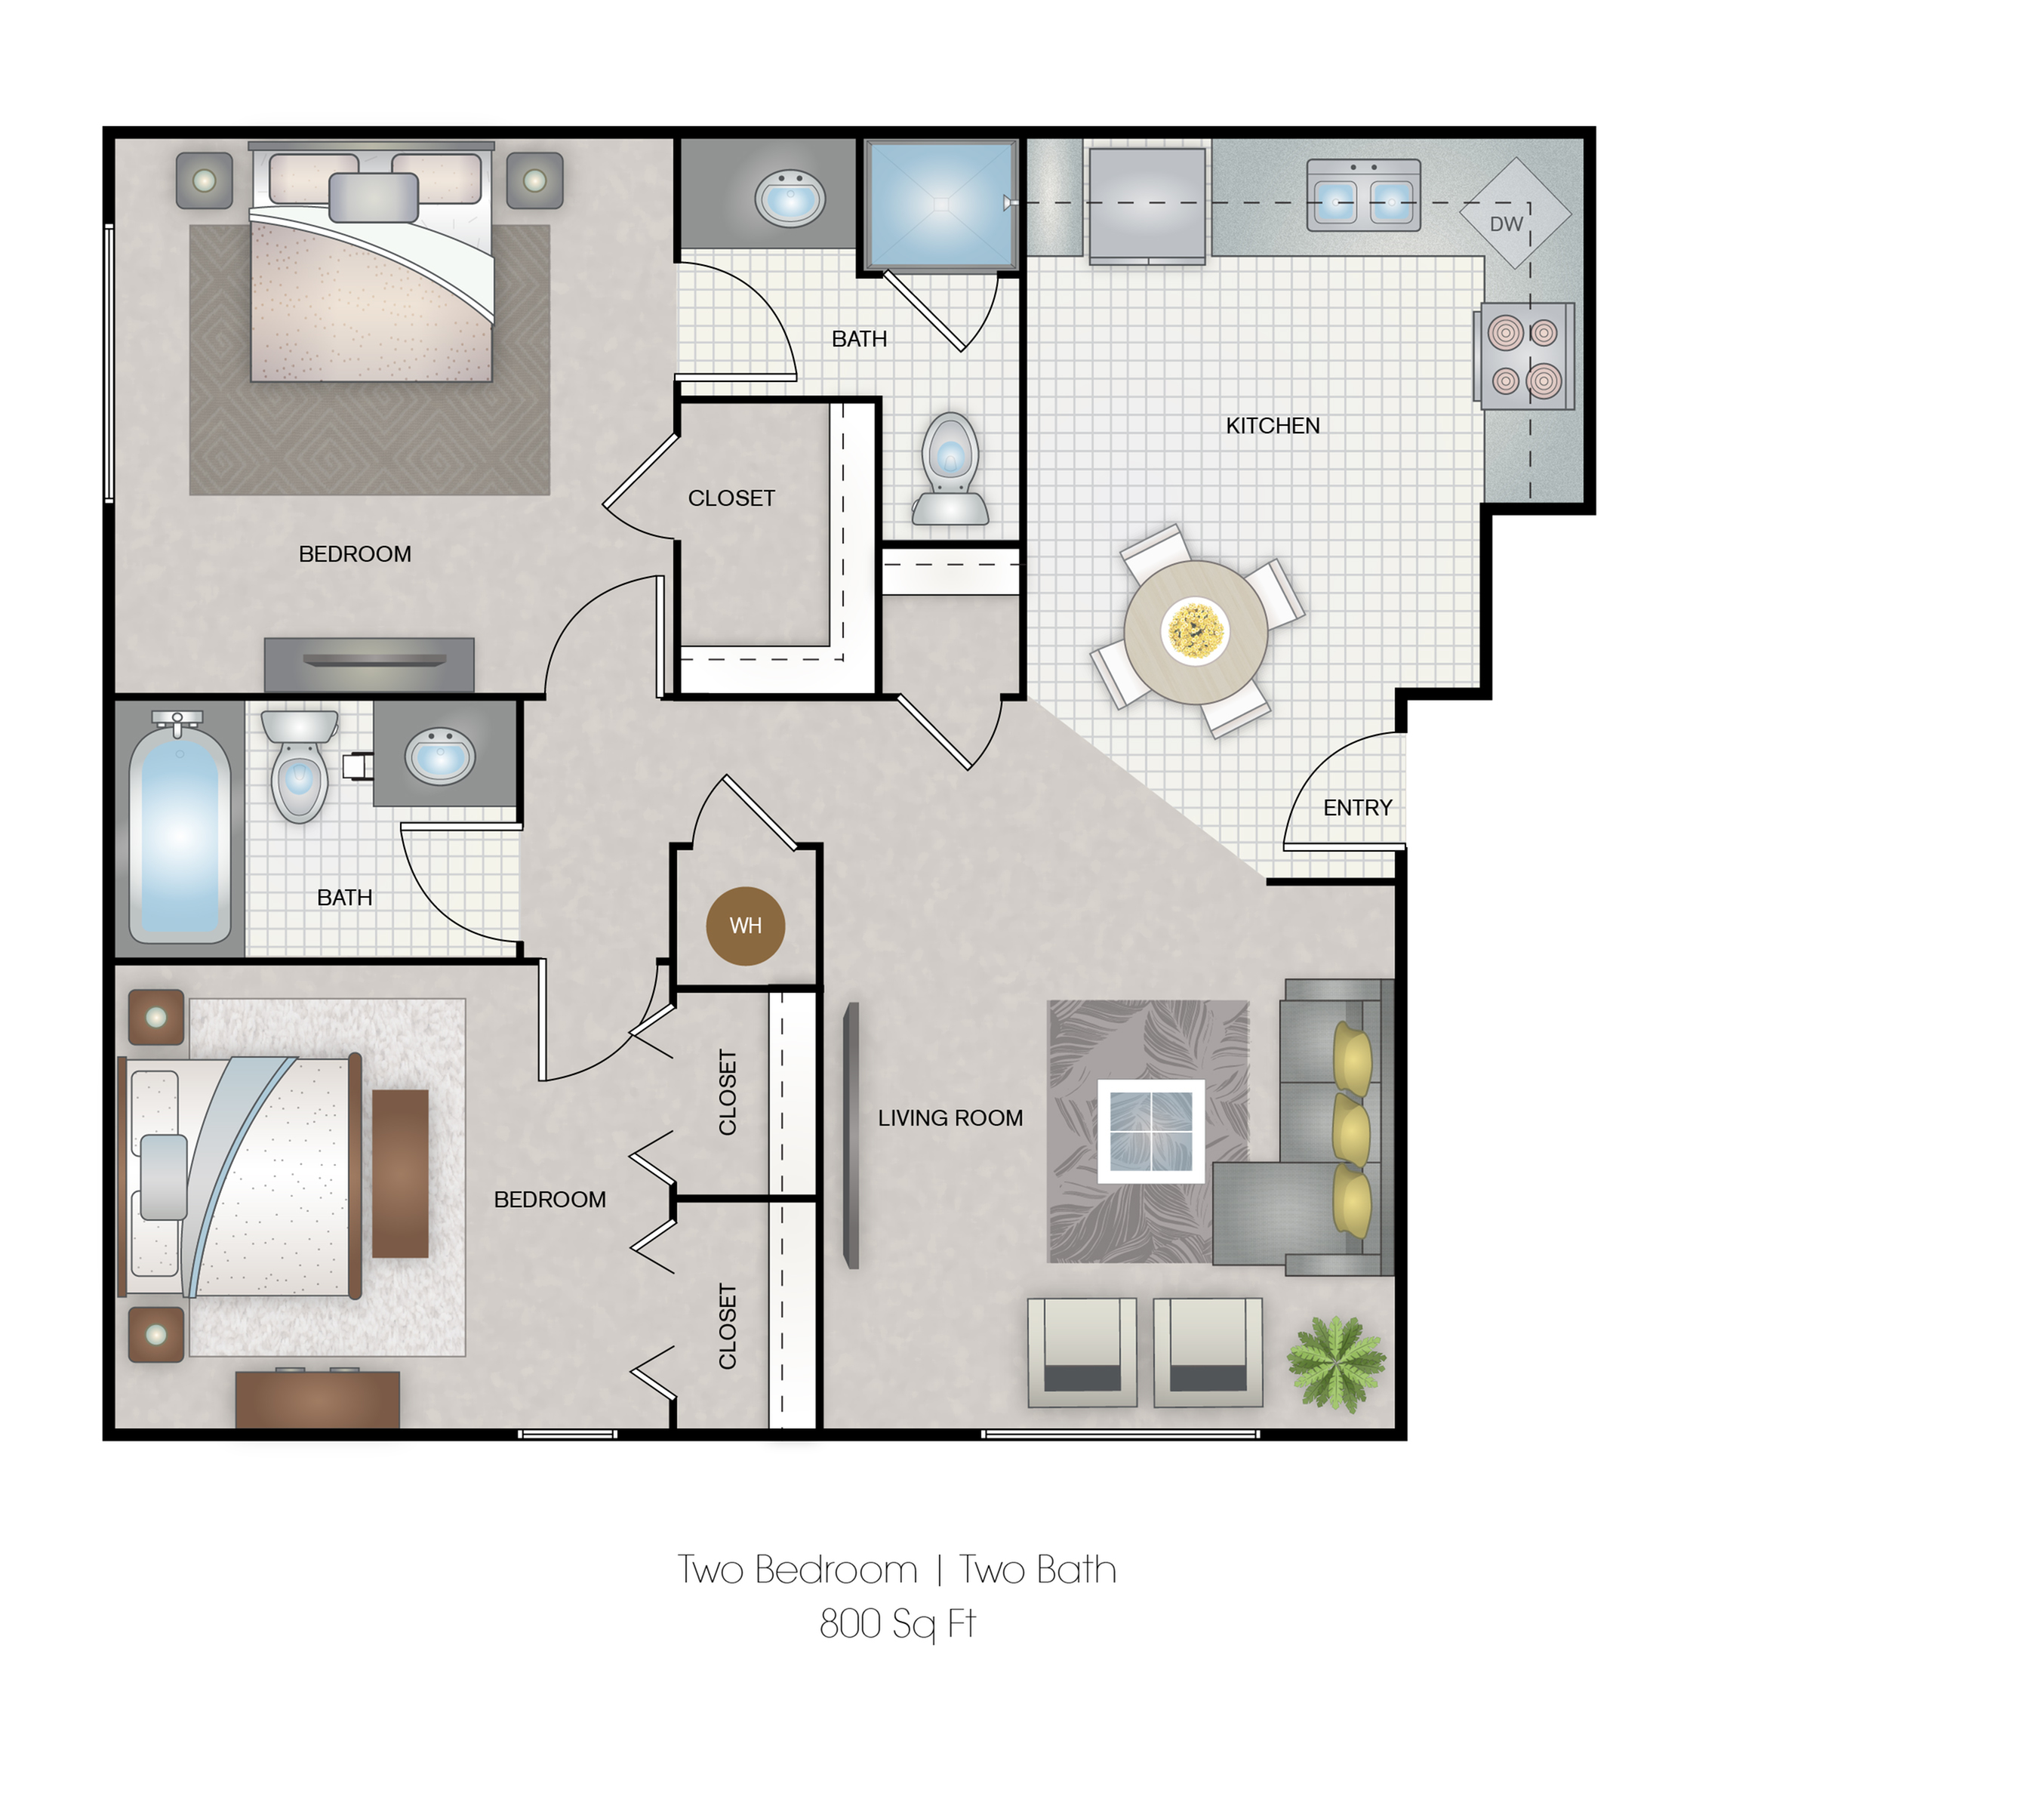 Two bedroom 800 Sq-ft